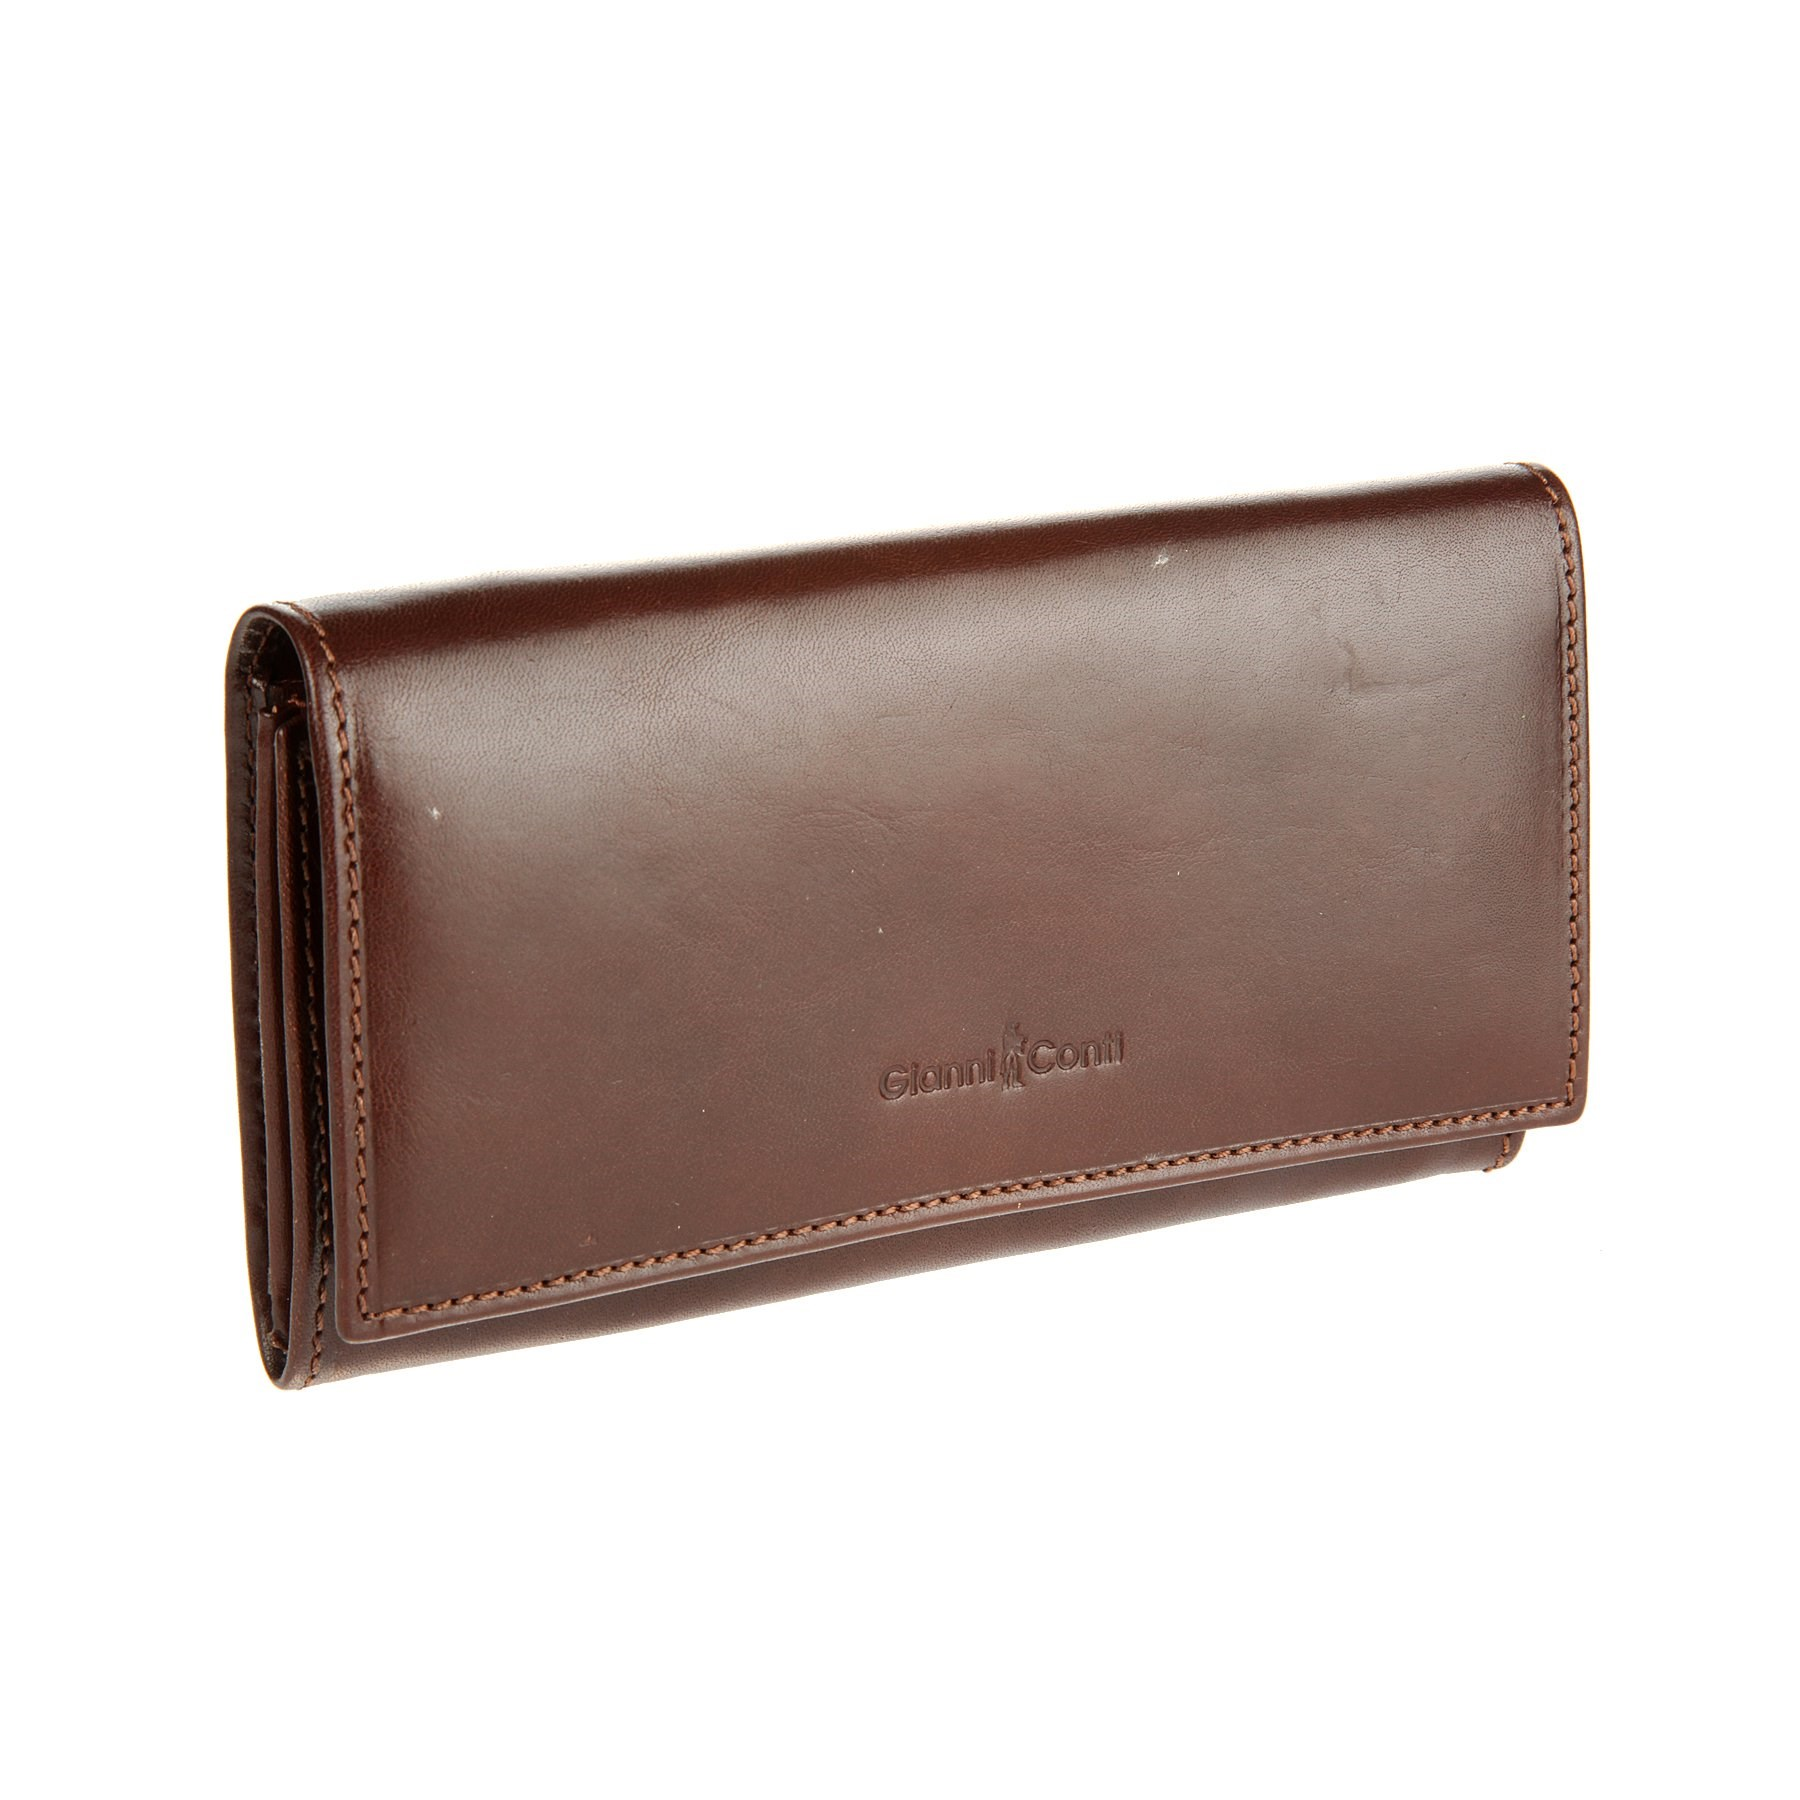 Coin Purse Gianni Conti 907003 Brown simline vintage genuine crazy horse cow leather men men s long hasp wallet wallets purse zipper coin pocket holder with chain